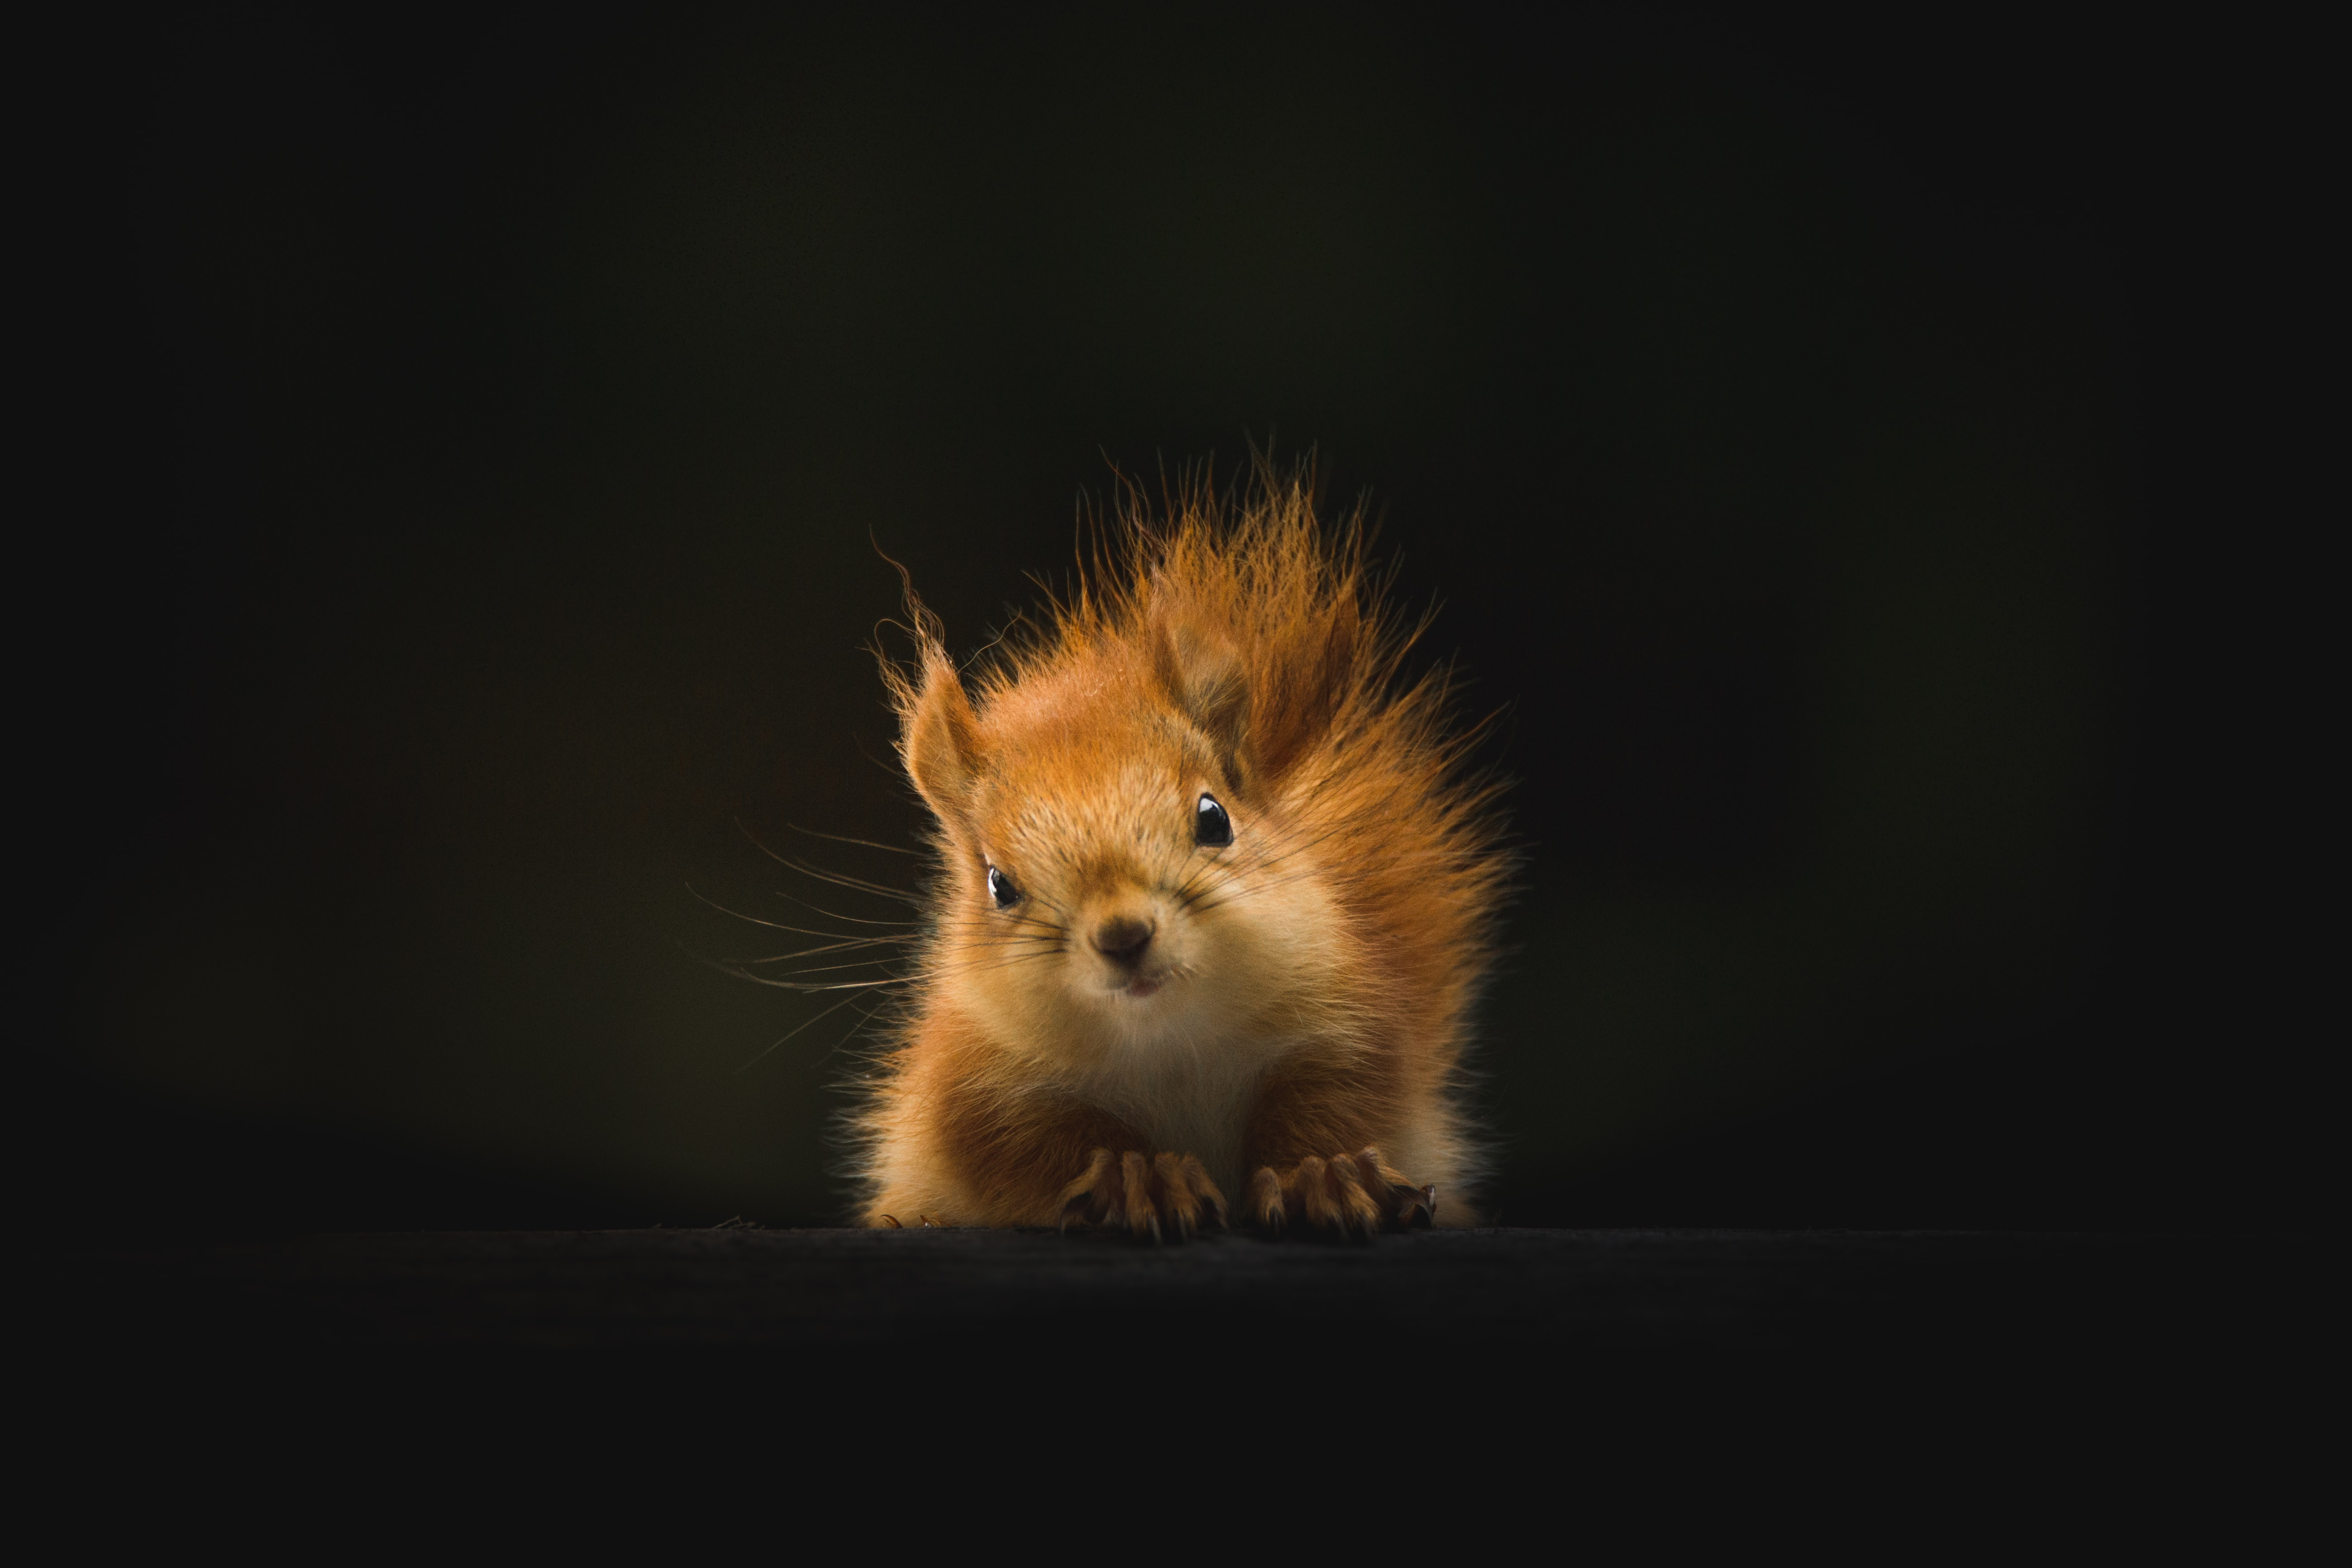 A squirrel with a dark background.